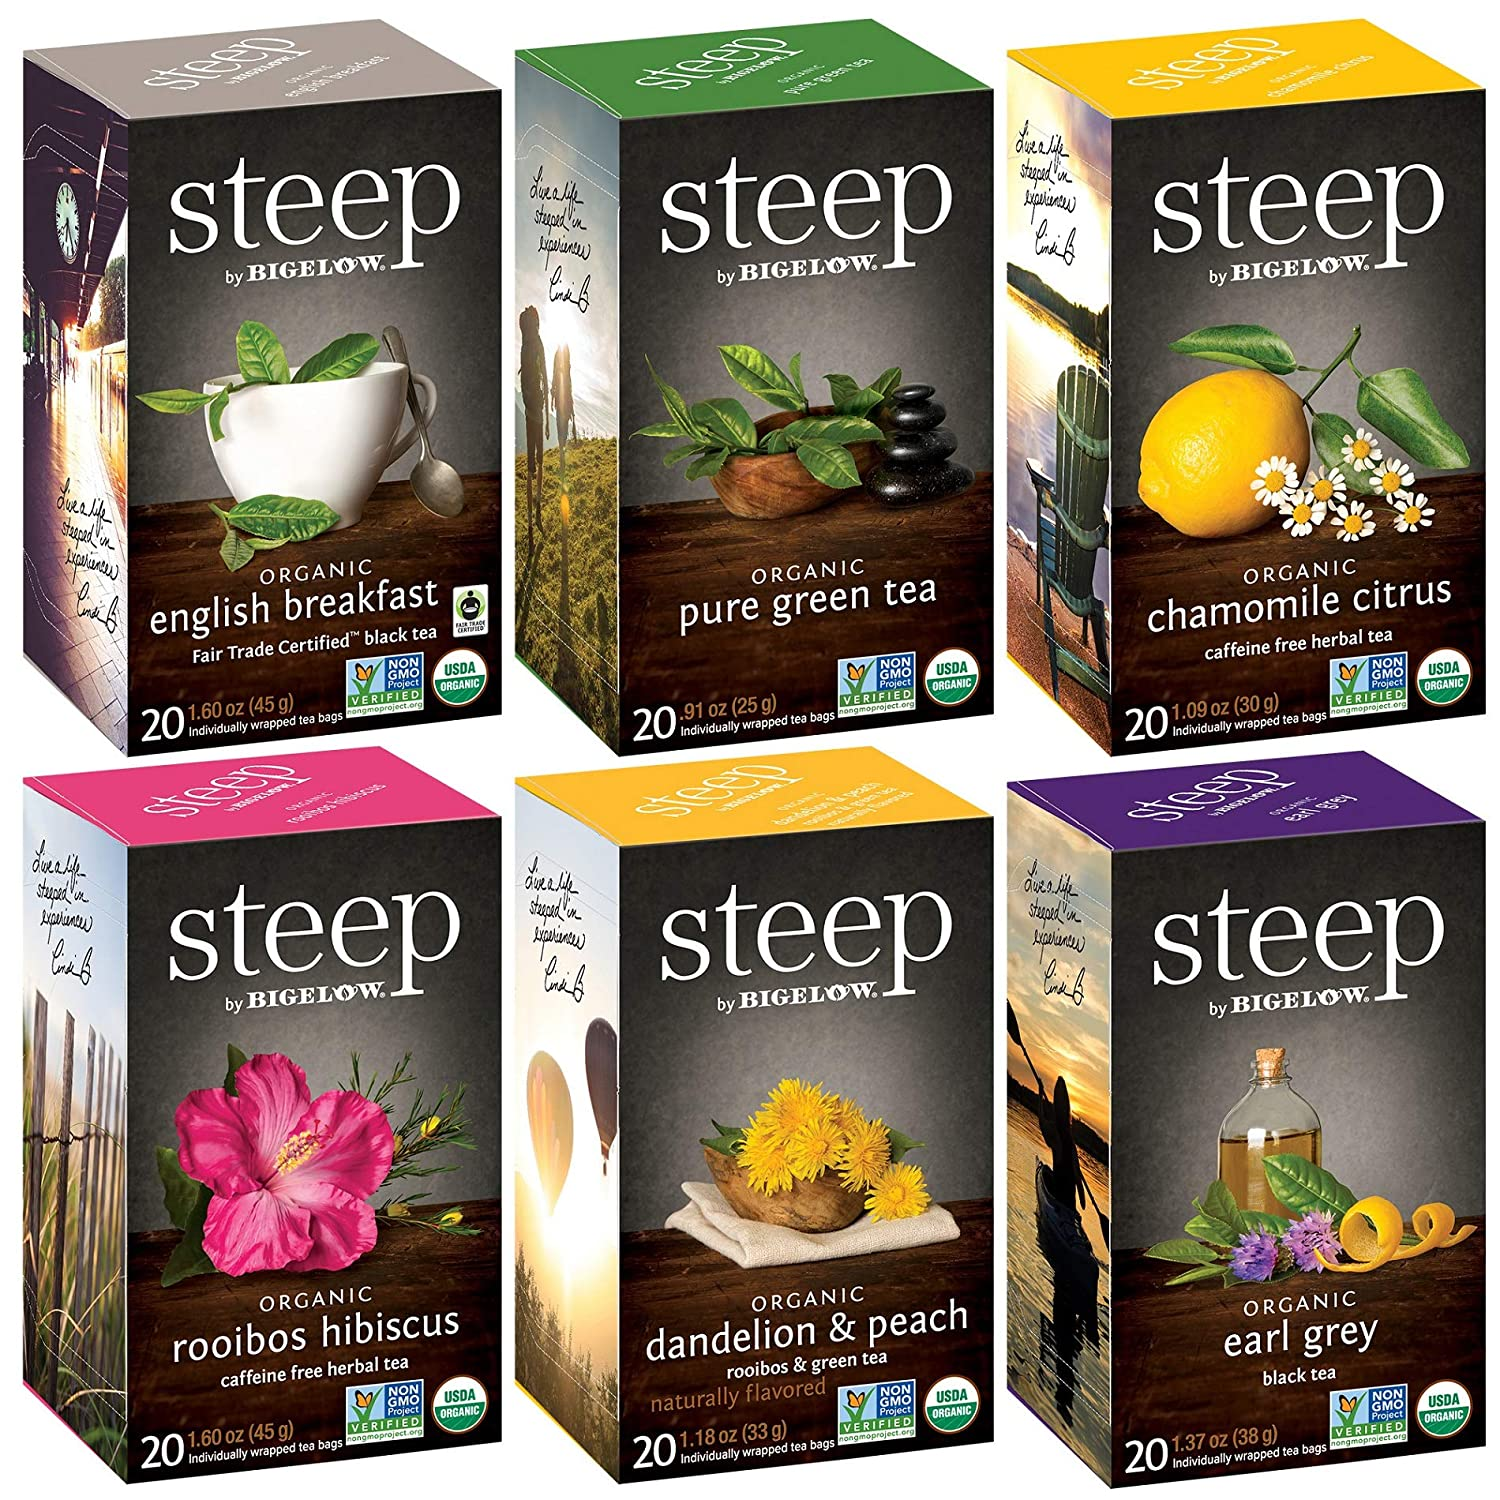 Steep by Bigelow Organic Mixed Caffienated Black New popularity Now on sale Caffeina Green